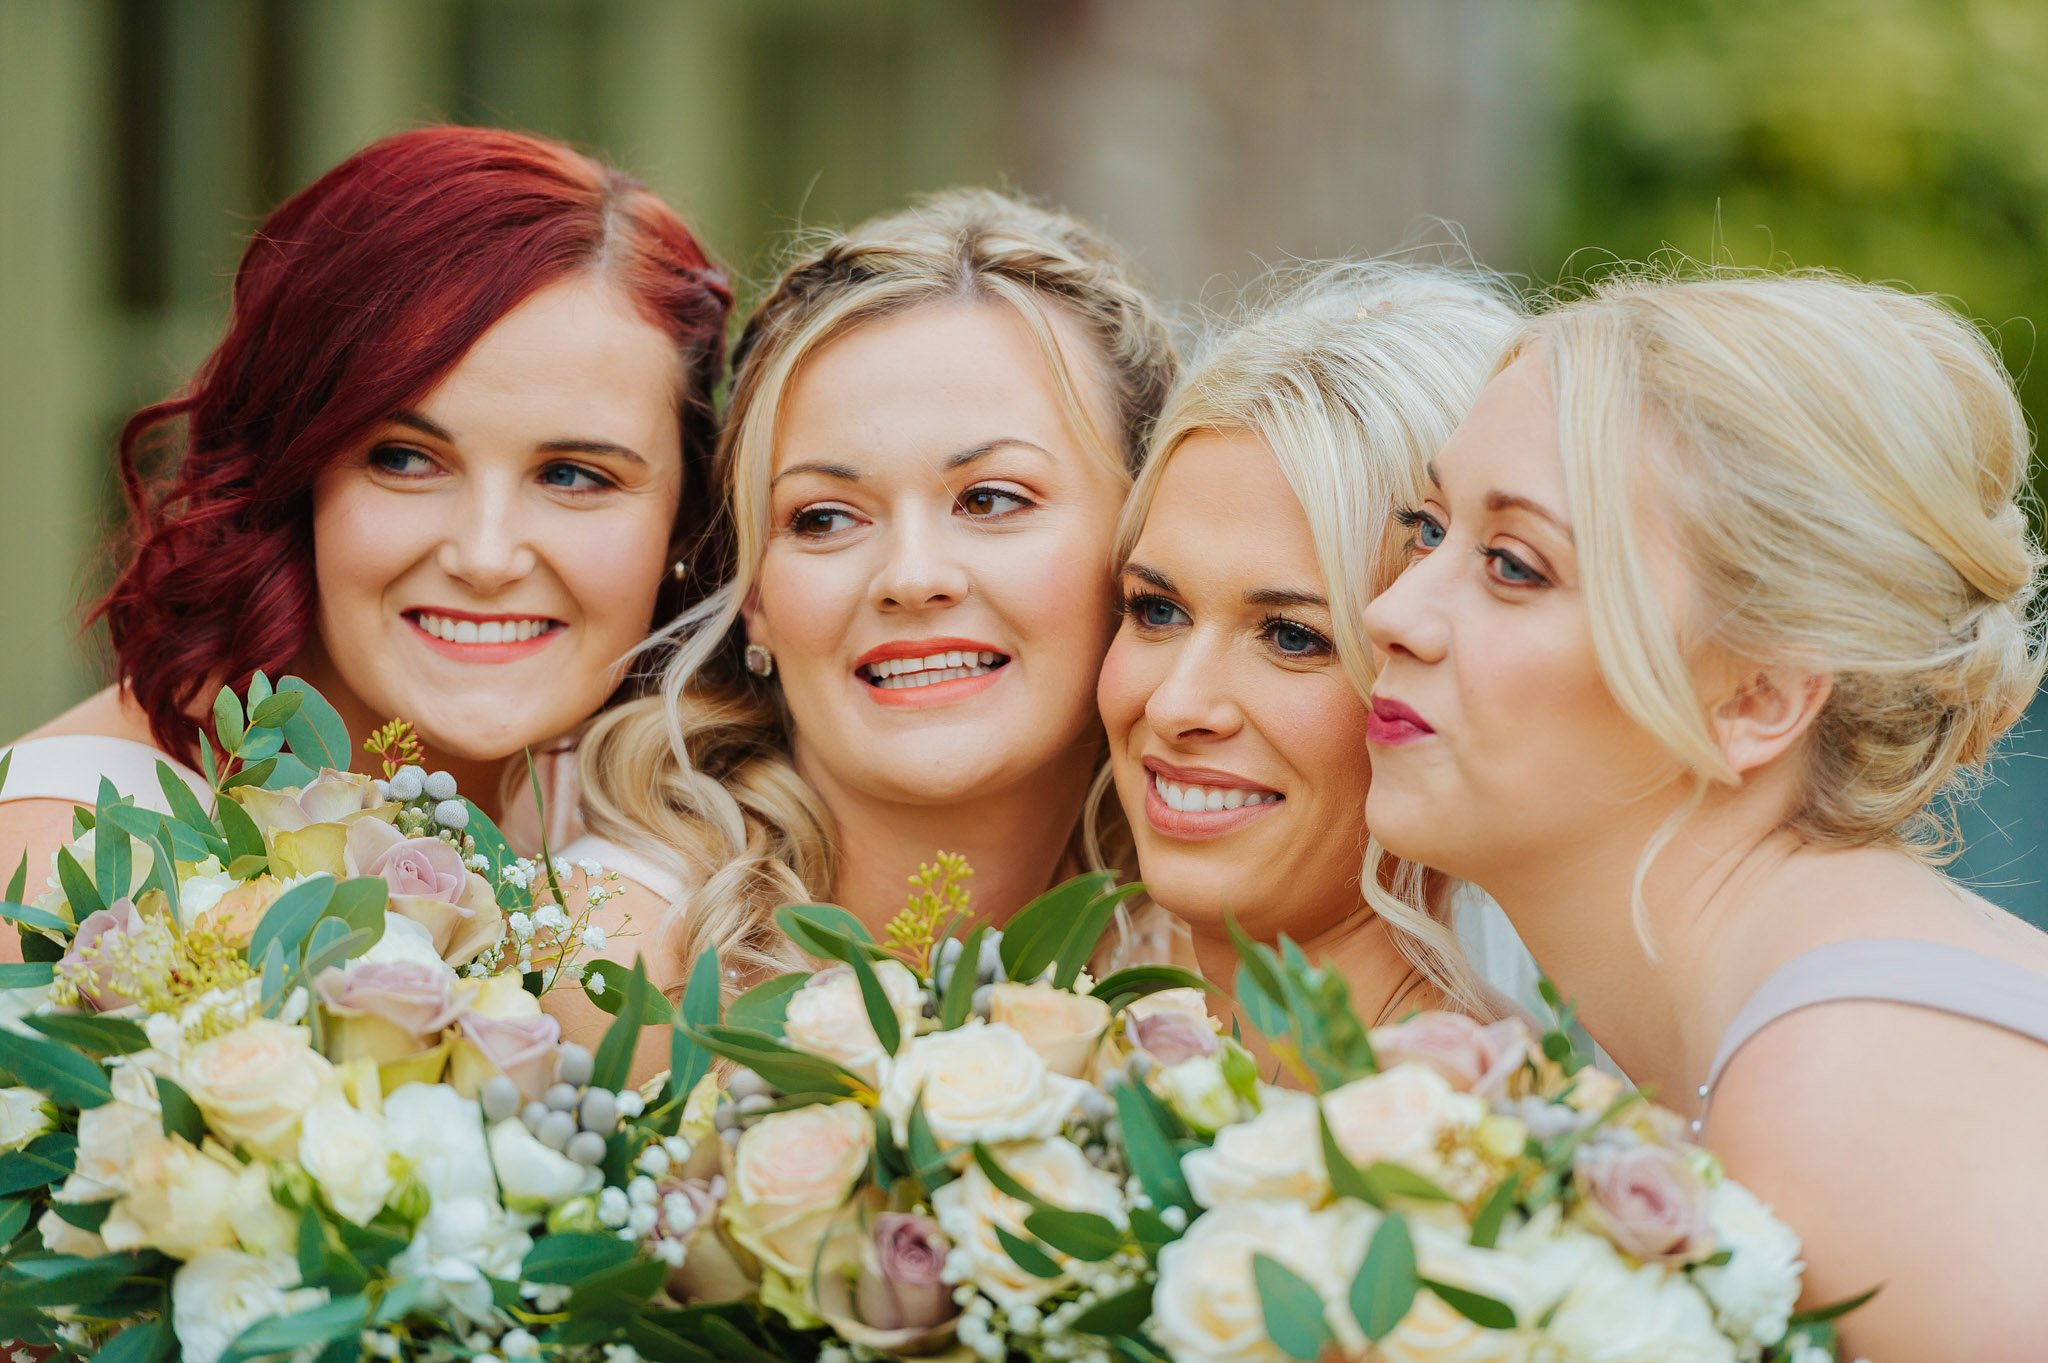 Lemore Manor wedding, Herefordshire - West Midlands | Sadie + Ken 45